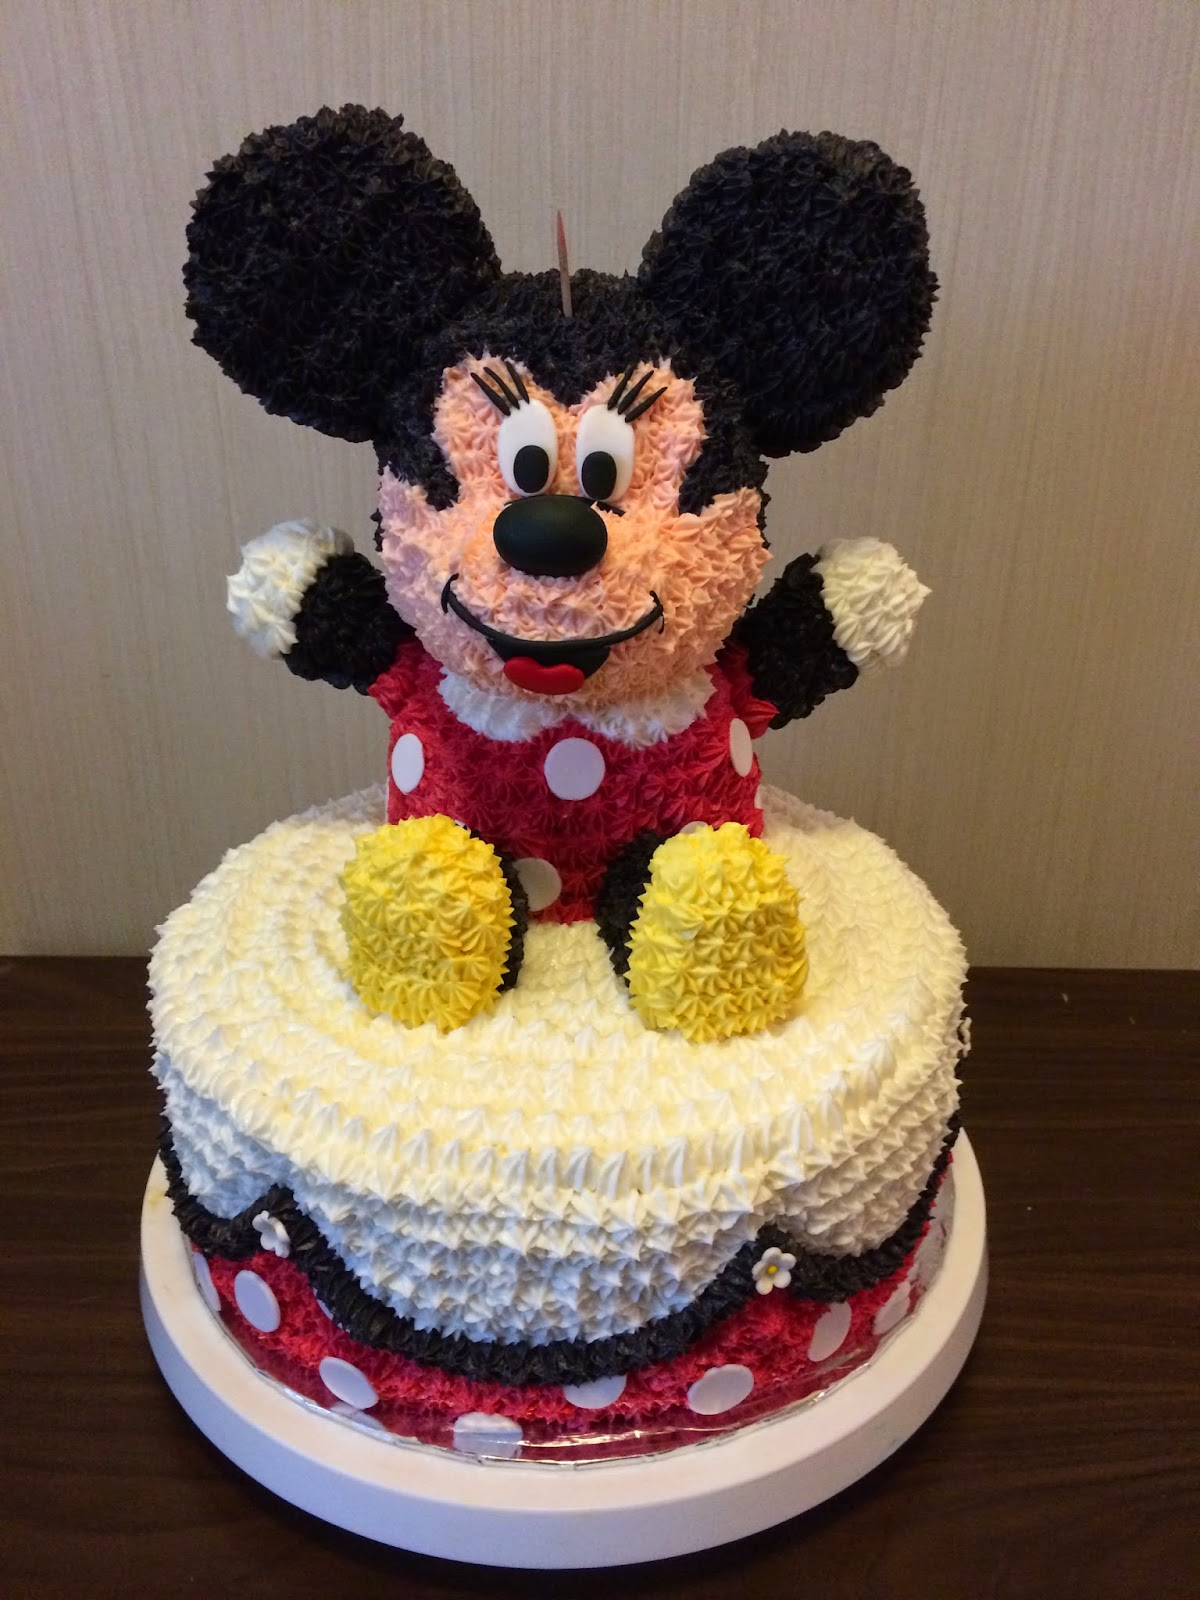 Minnie Mouse Cake With A Surprise Inside